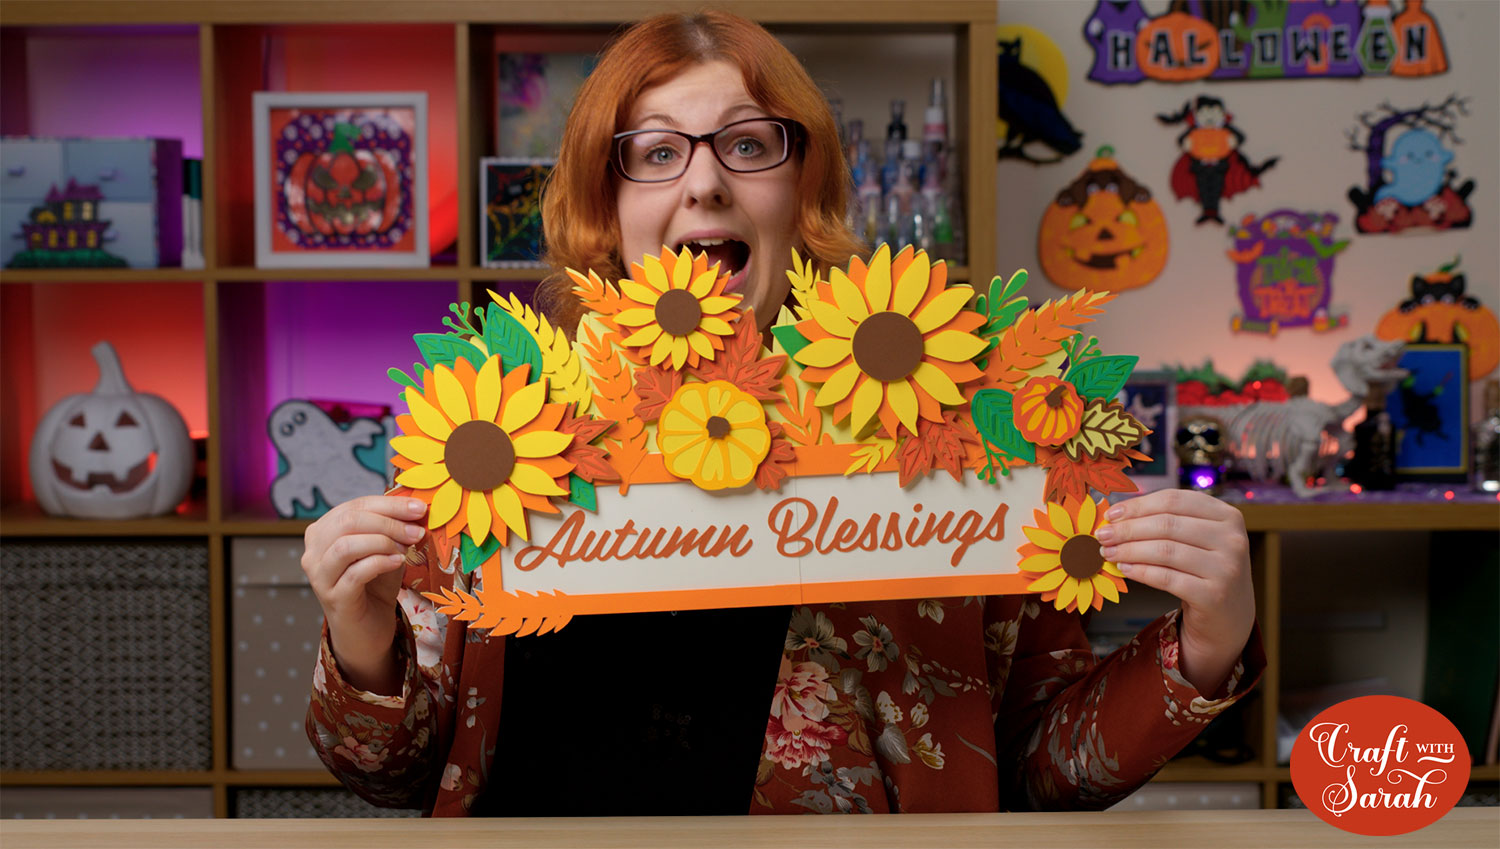 Autumn blessings craft